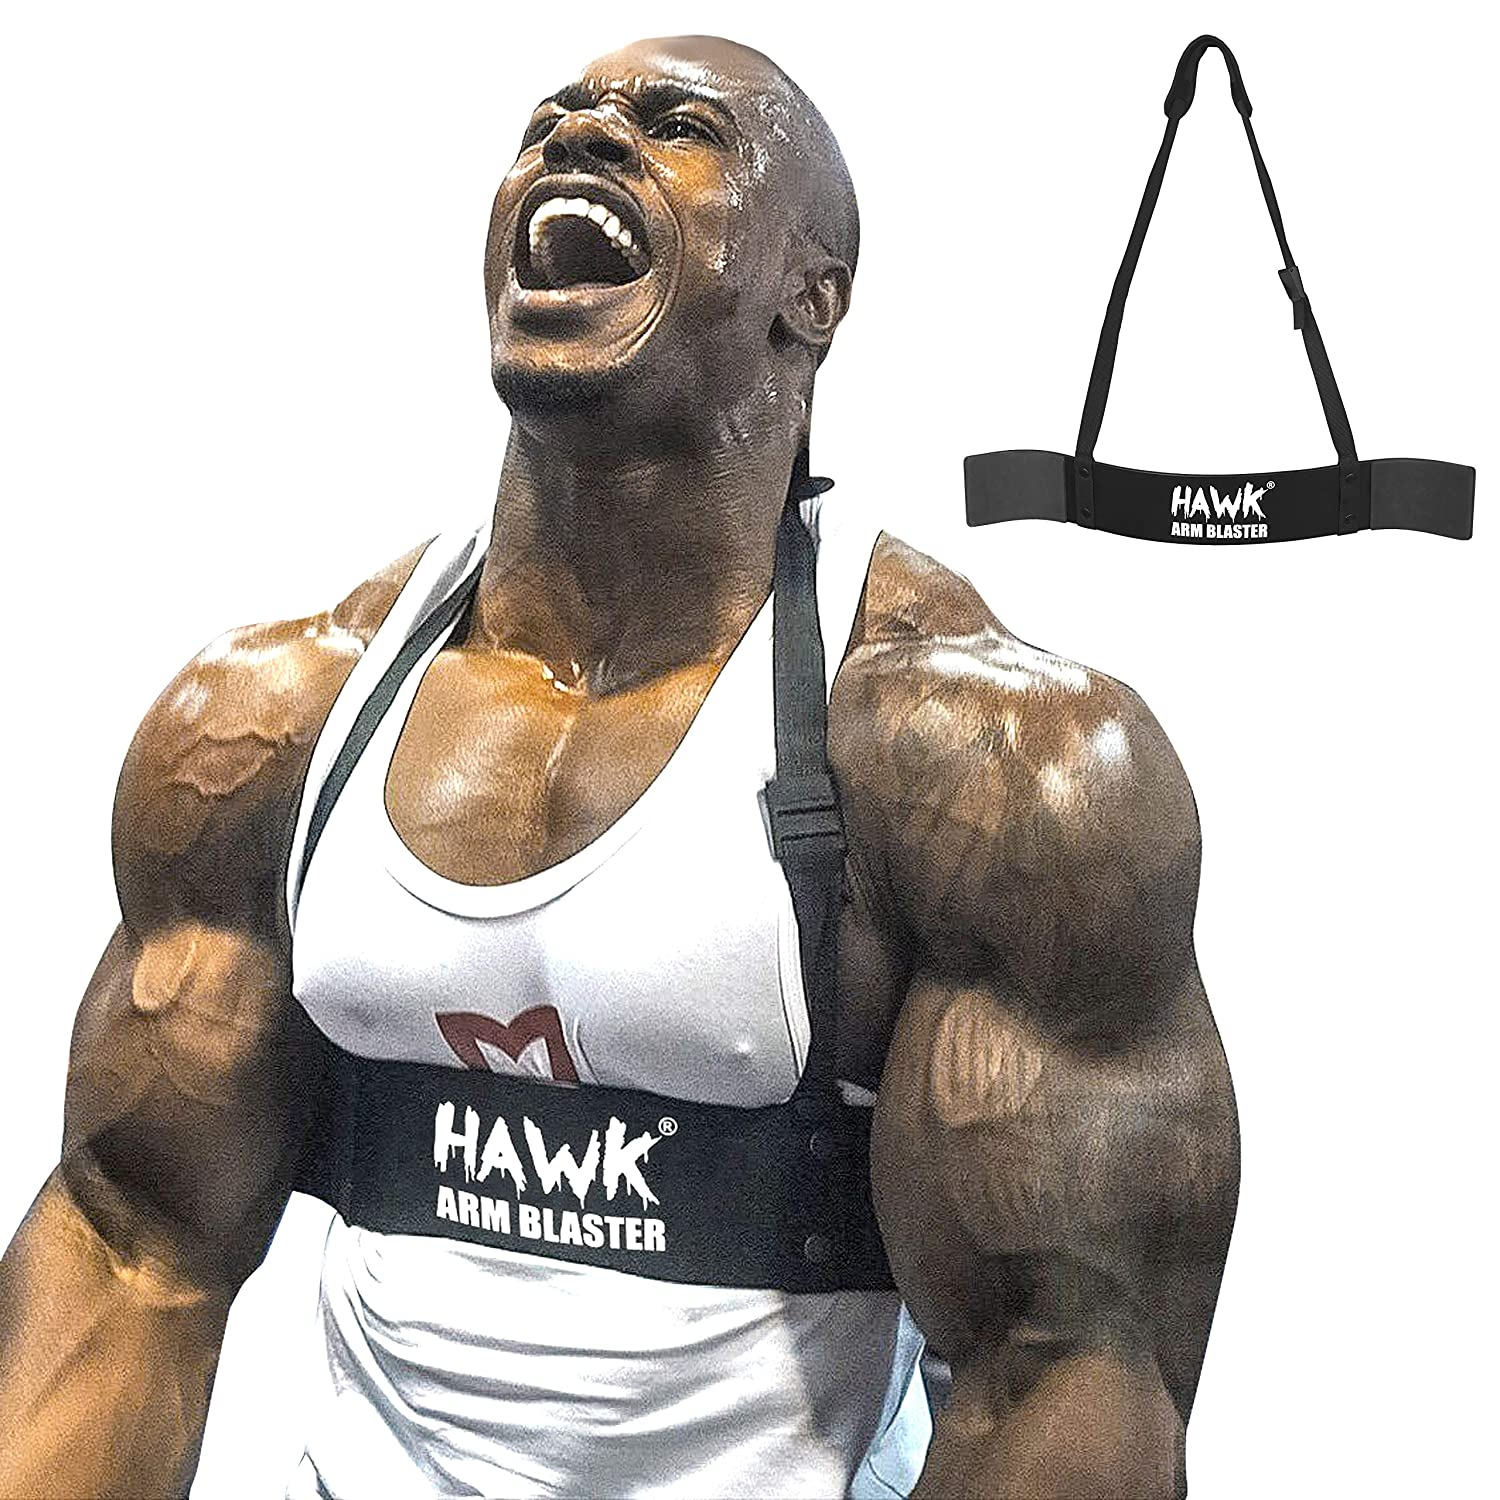 Hawk Sports Arm Blaster for Biceps Triceps Dumbbells Barbells Curls Muscle Builder Bicep Isolator for Big Arms Bodybuilding Weight Lifting Support for Strength Muscle Gains